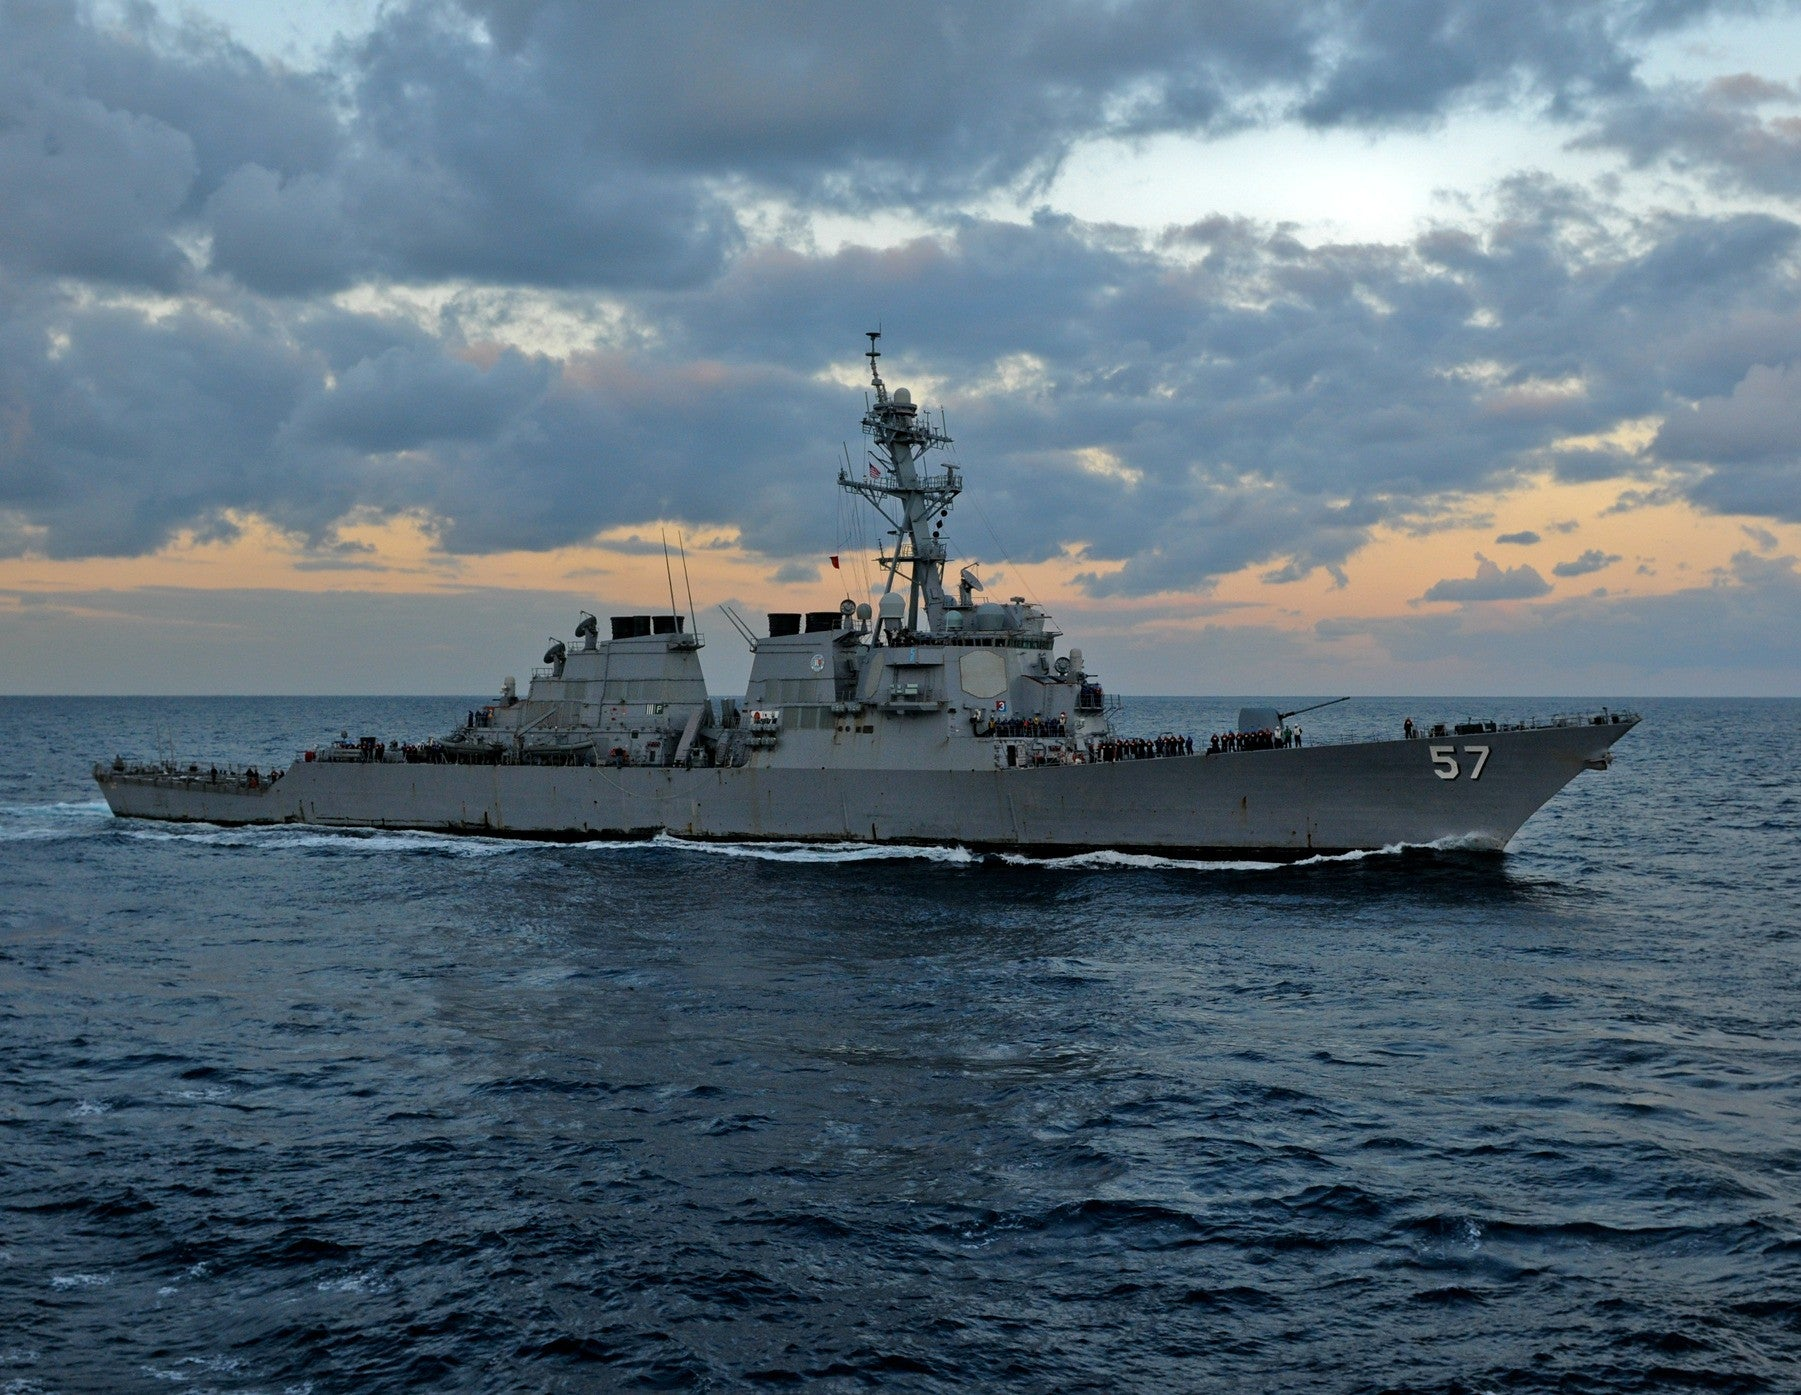 "USS Mitscher DDG-57 Atlantic Ocean December 9, 2011 - 8 x 10"" Photograph"